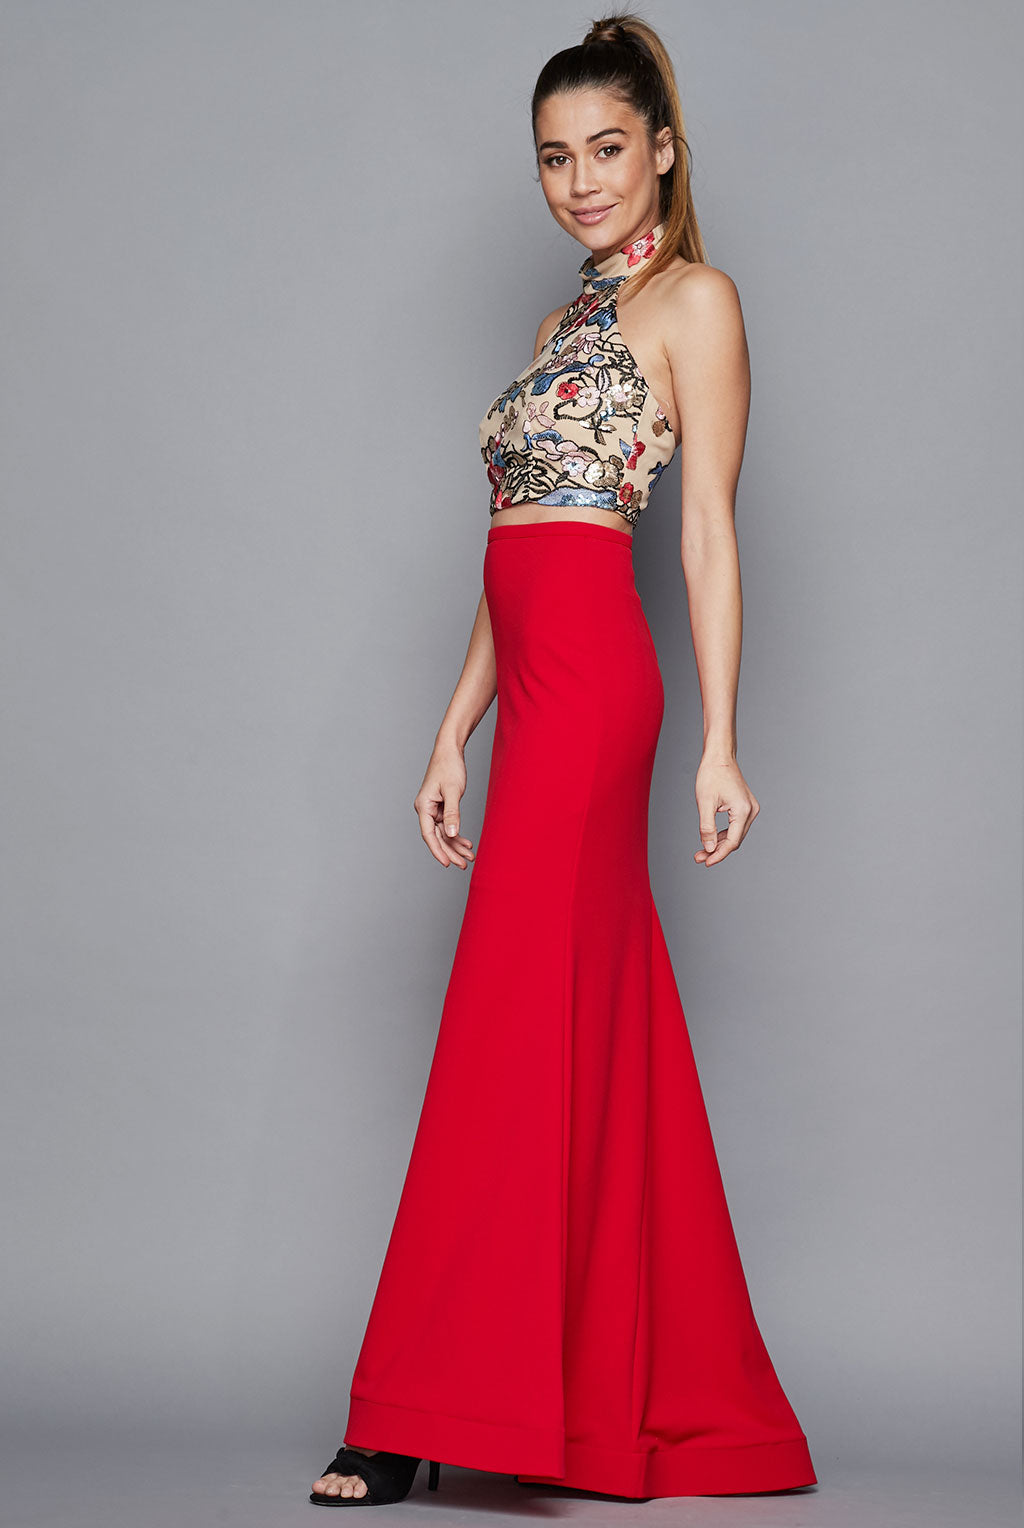 Teeze Me |  Two Piece Halter Sequin Embroidered Top With Long Trumpet Skirt Dress  | Red/Tan